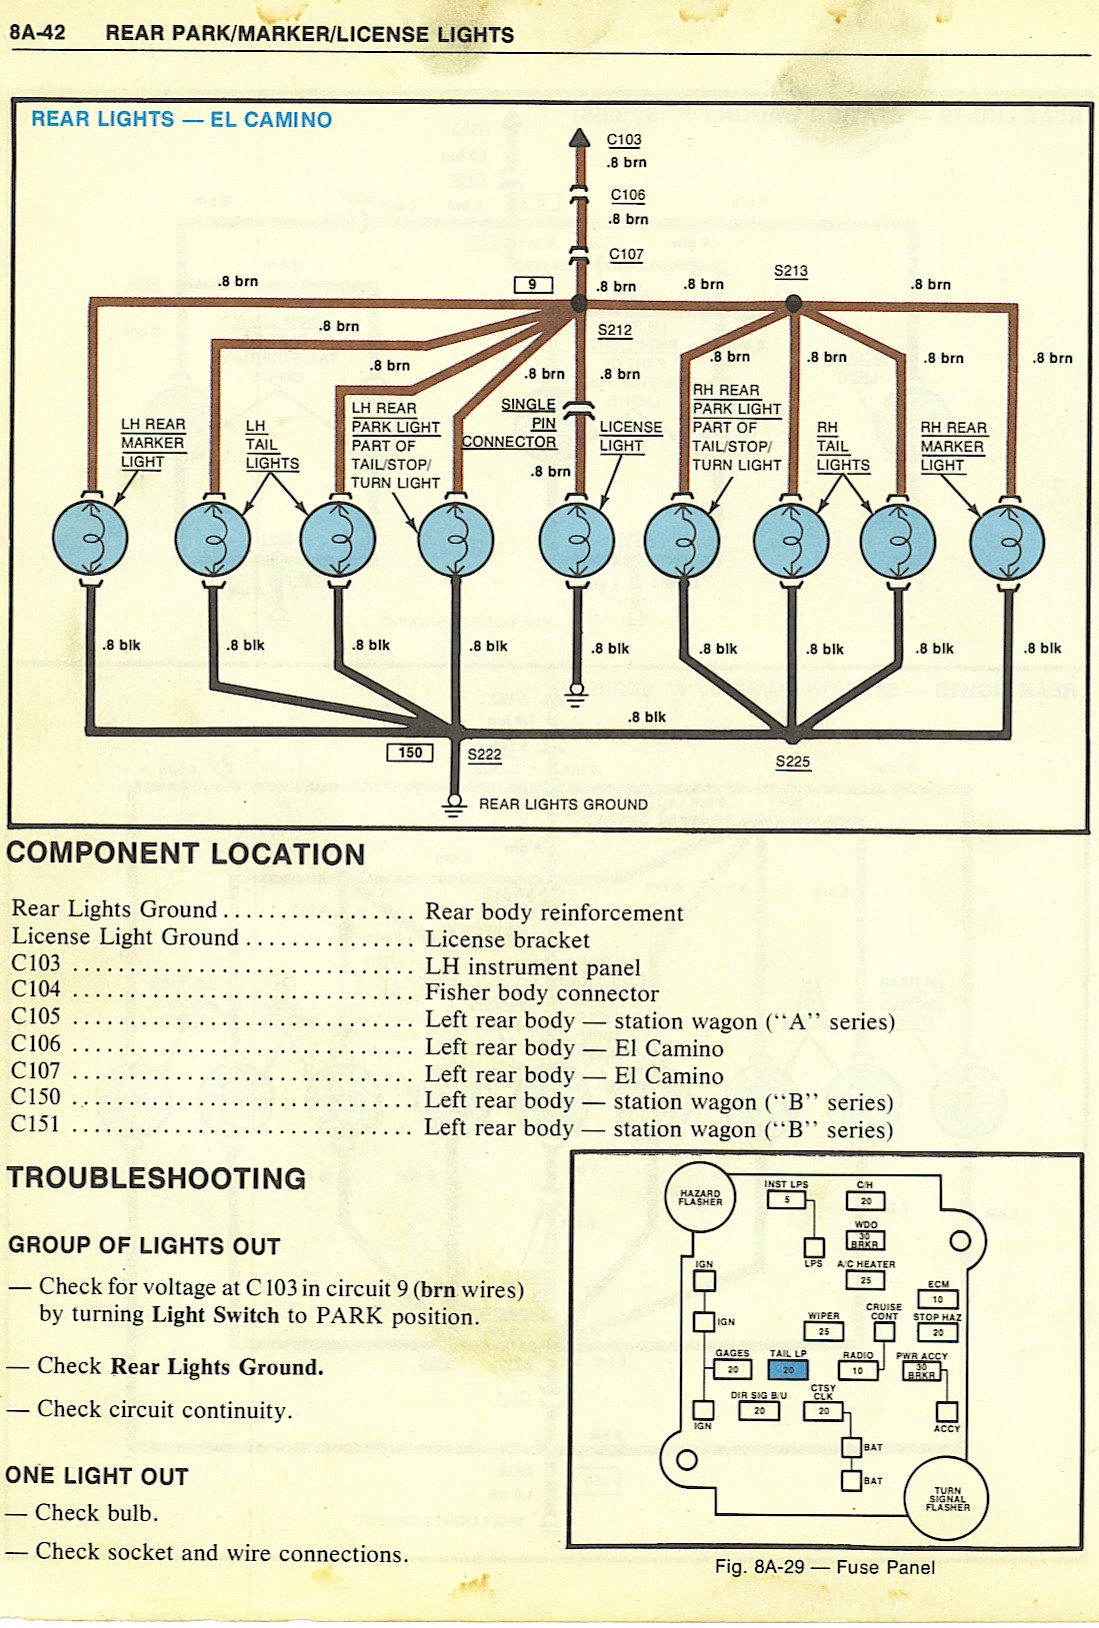 3 Way Switch Wiring 1968 El Camino Wiring Diagram Hd Quality Kang Diagrambase Emballages Sous Vide Fr